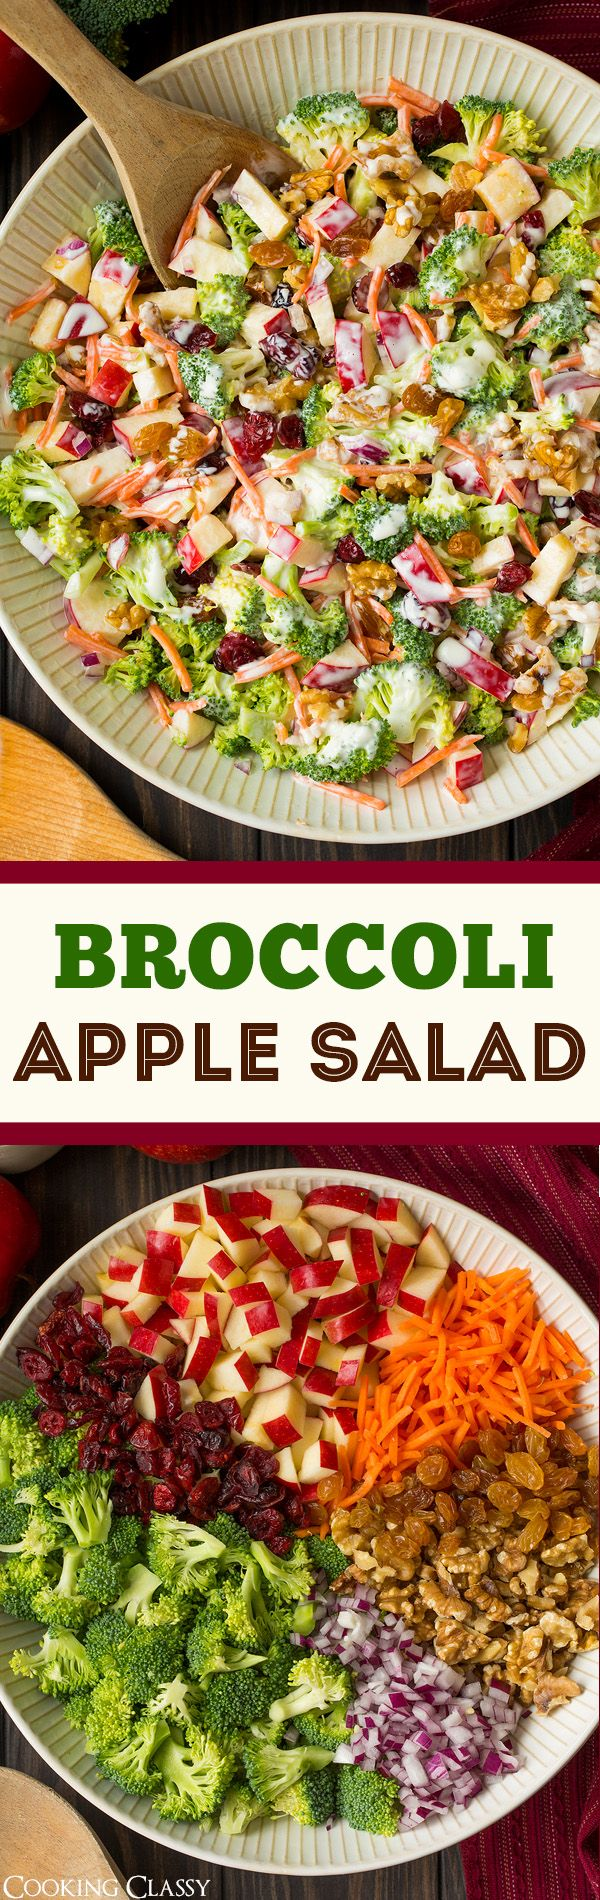 Broccoli Apple Salad. A crowd pleaser!   Cooking Classy